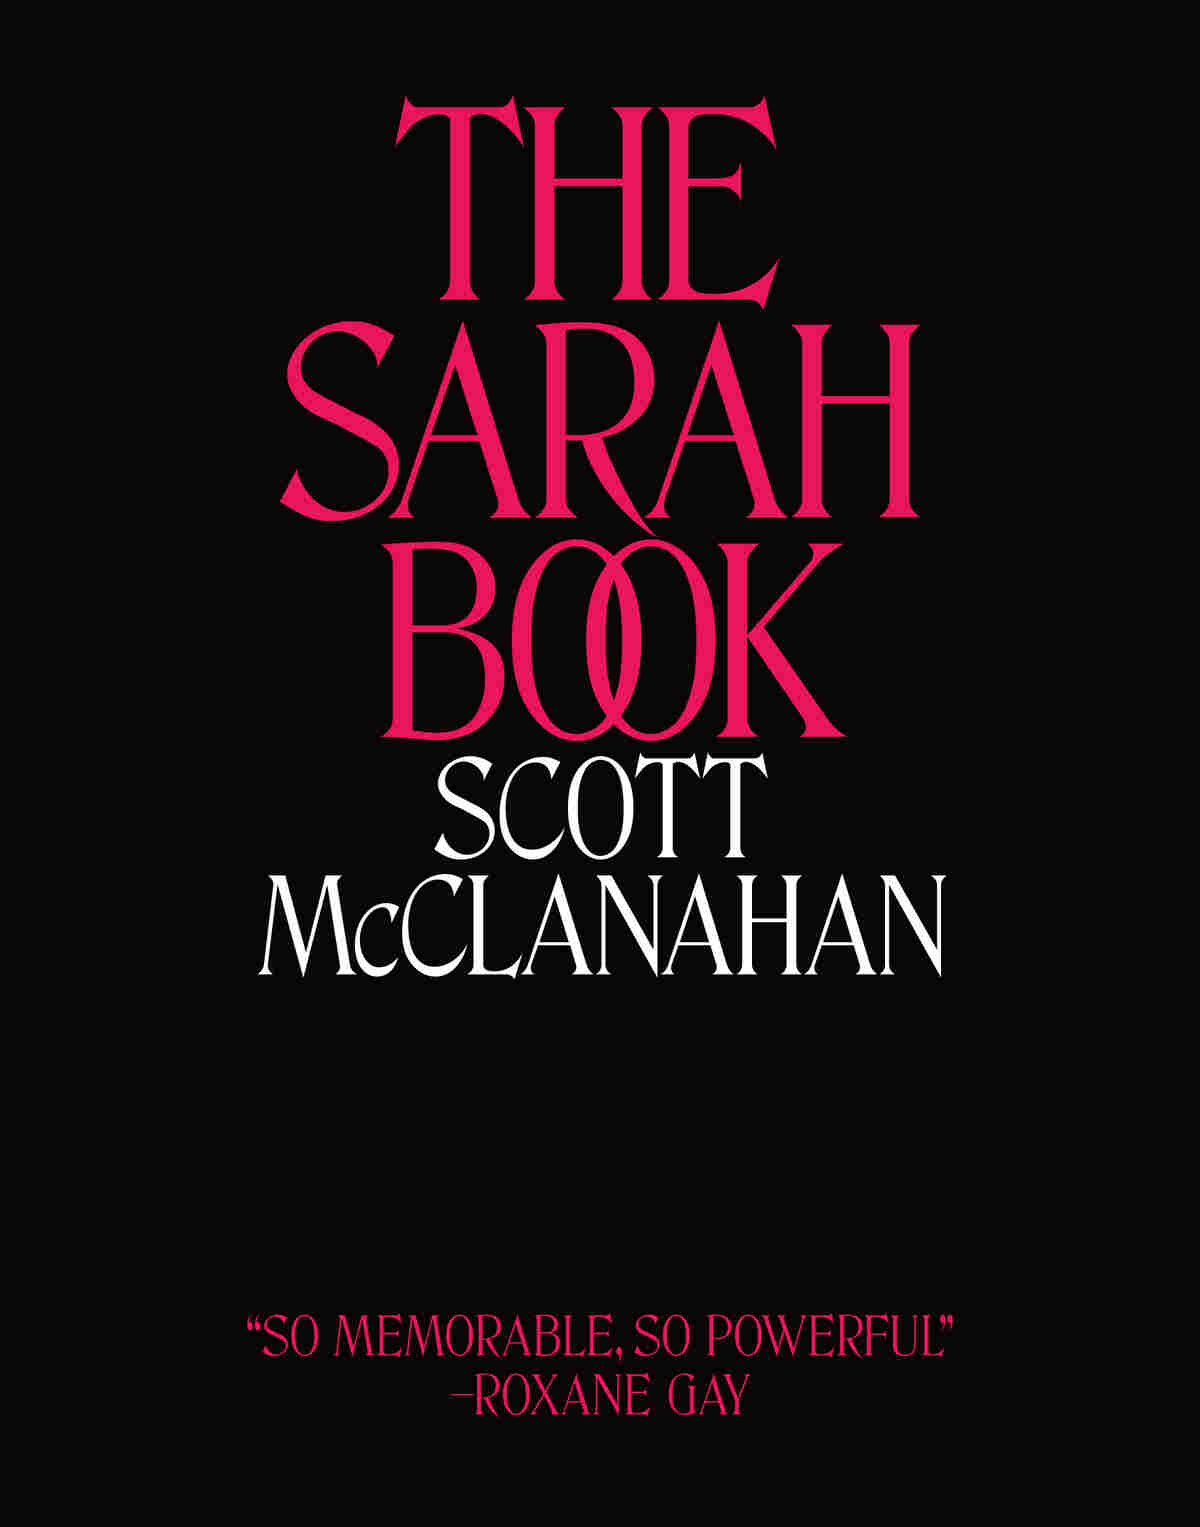 The Sarah Book, by Scott McClanahan